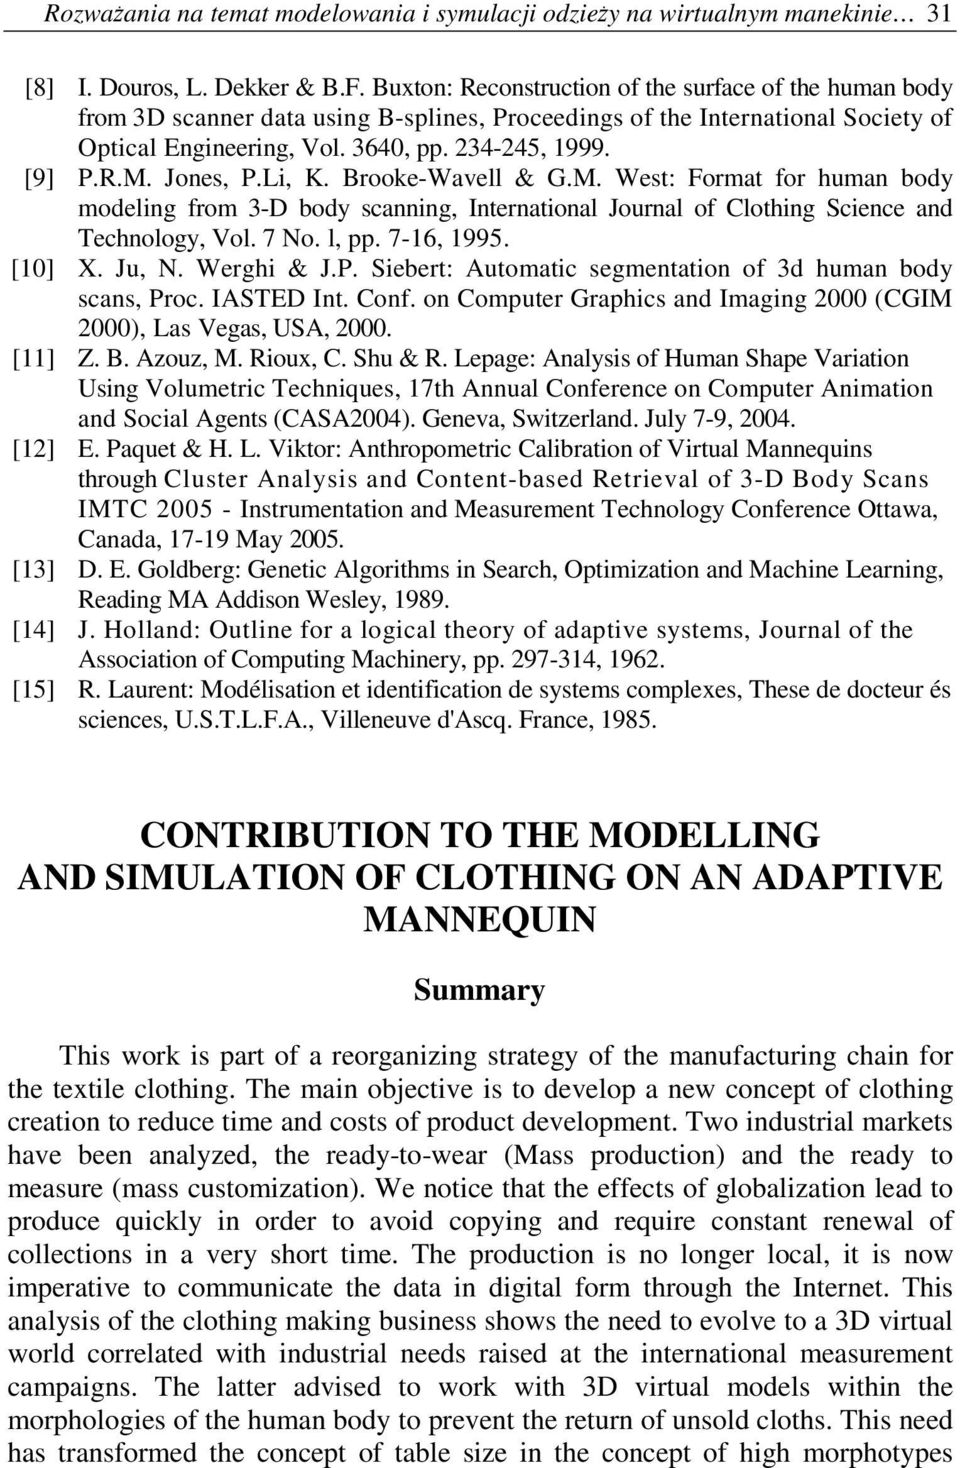 Jones, P.Li, K. Brooke-Wavell & G.M. West: Format for human body modeling from 3-D body scanning, International Journal of Clothing Science and Technology, Vol. 7 No. l, pp. 7-16, 1995. [10] X. Ju, N.